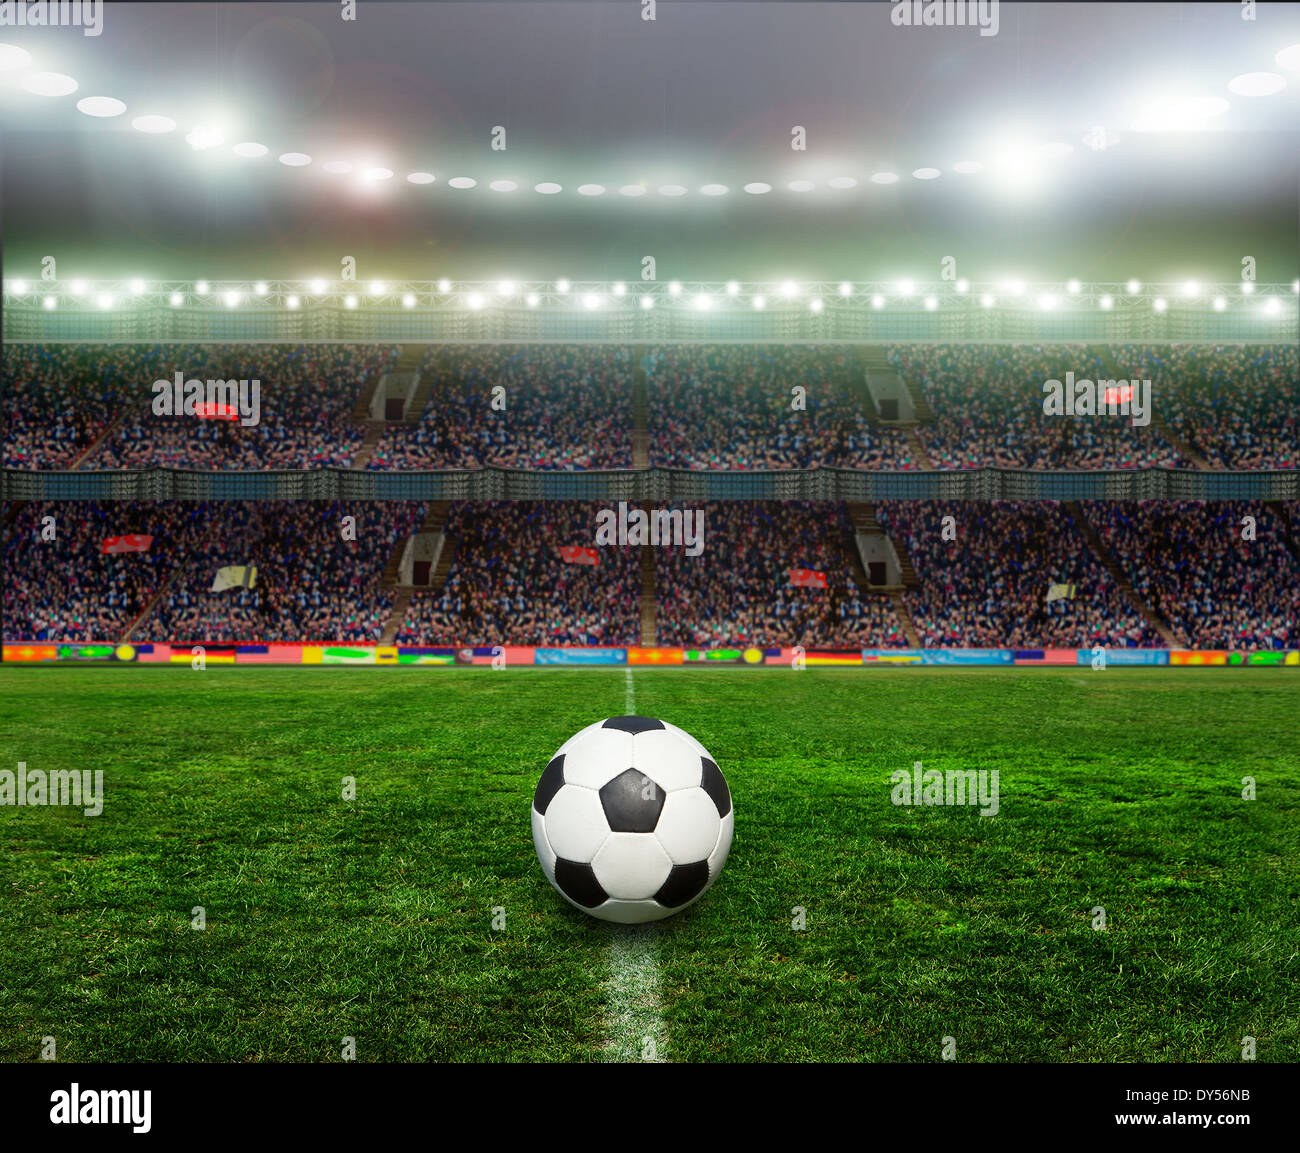 On the stadium. abstract football or soccer backgrounds - Stock Image